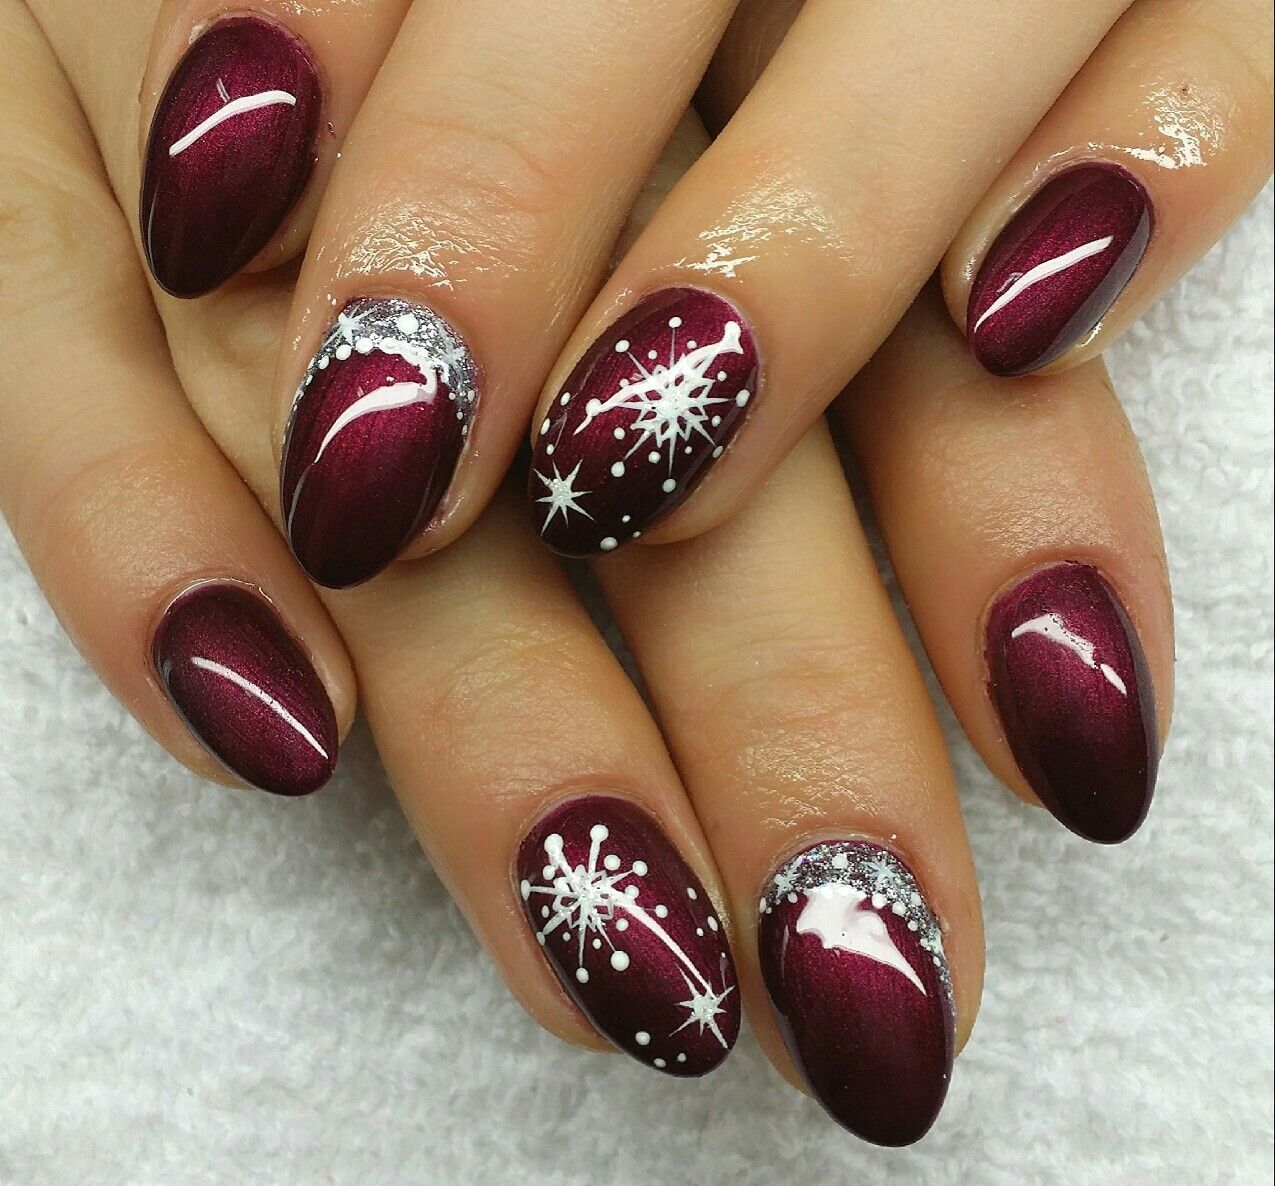 Christmas Nails Not Acrylic: 36 Classy Winter Nails Art Design To Inspire